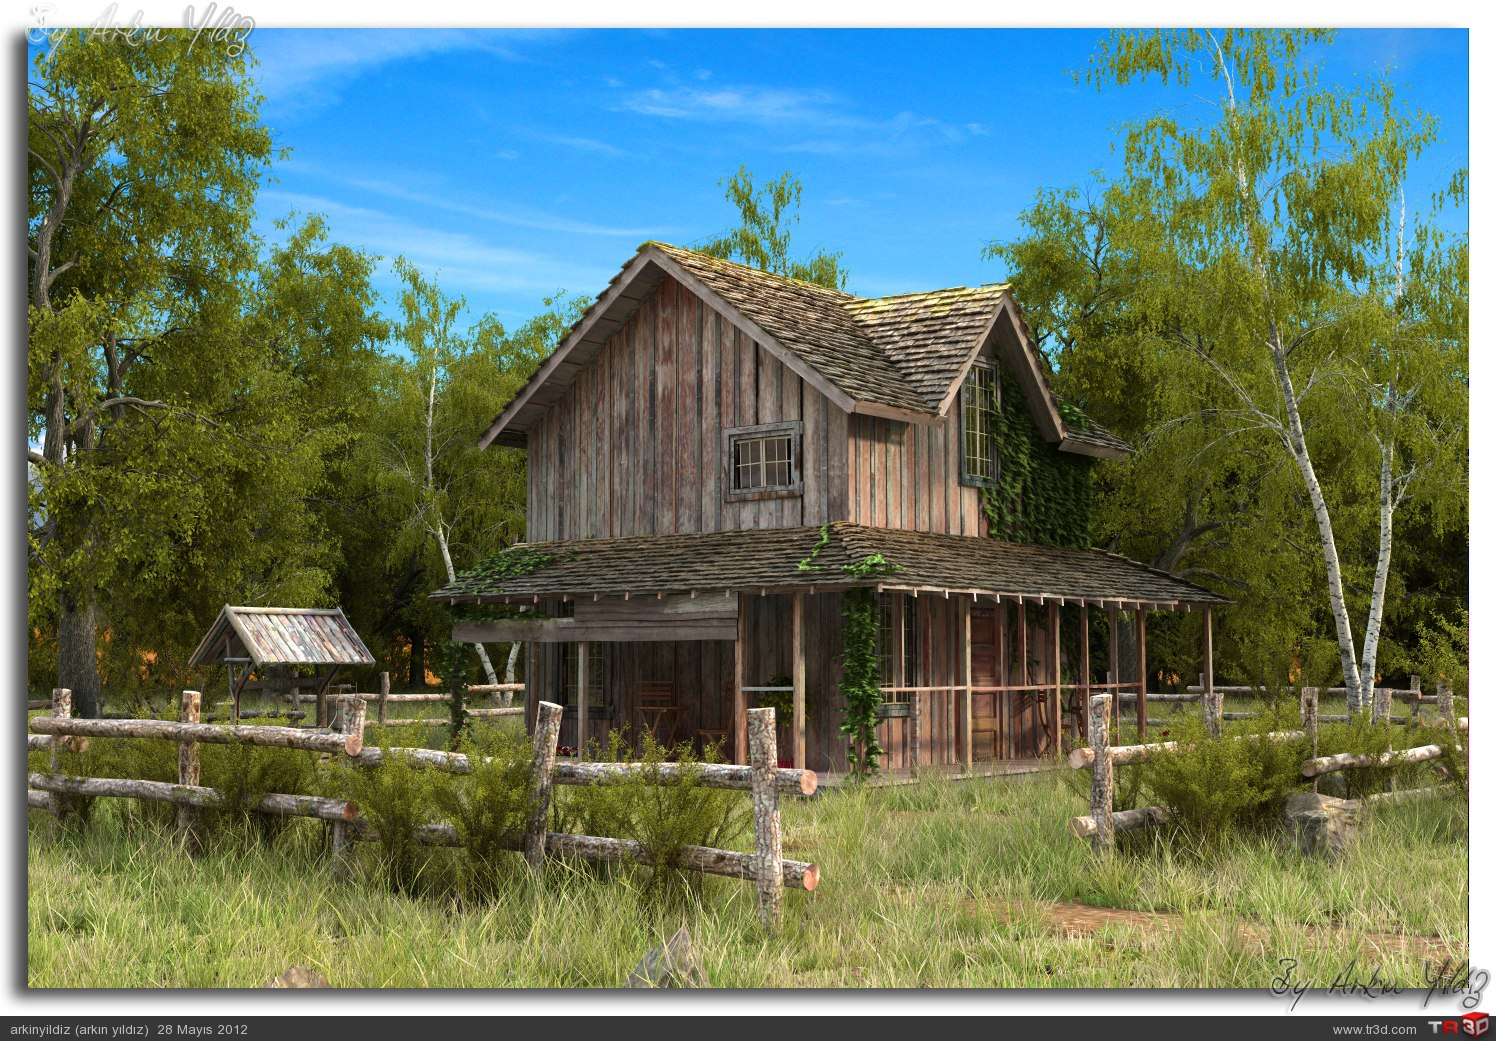 Old Wooden House 2